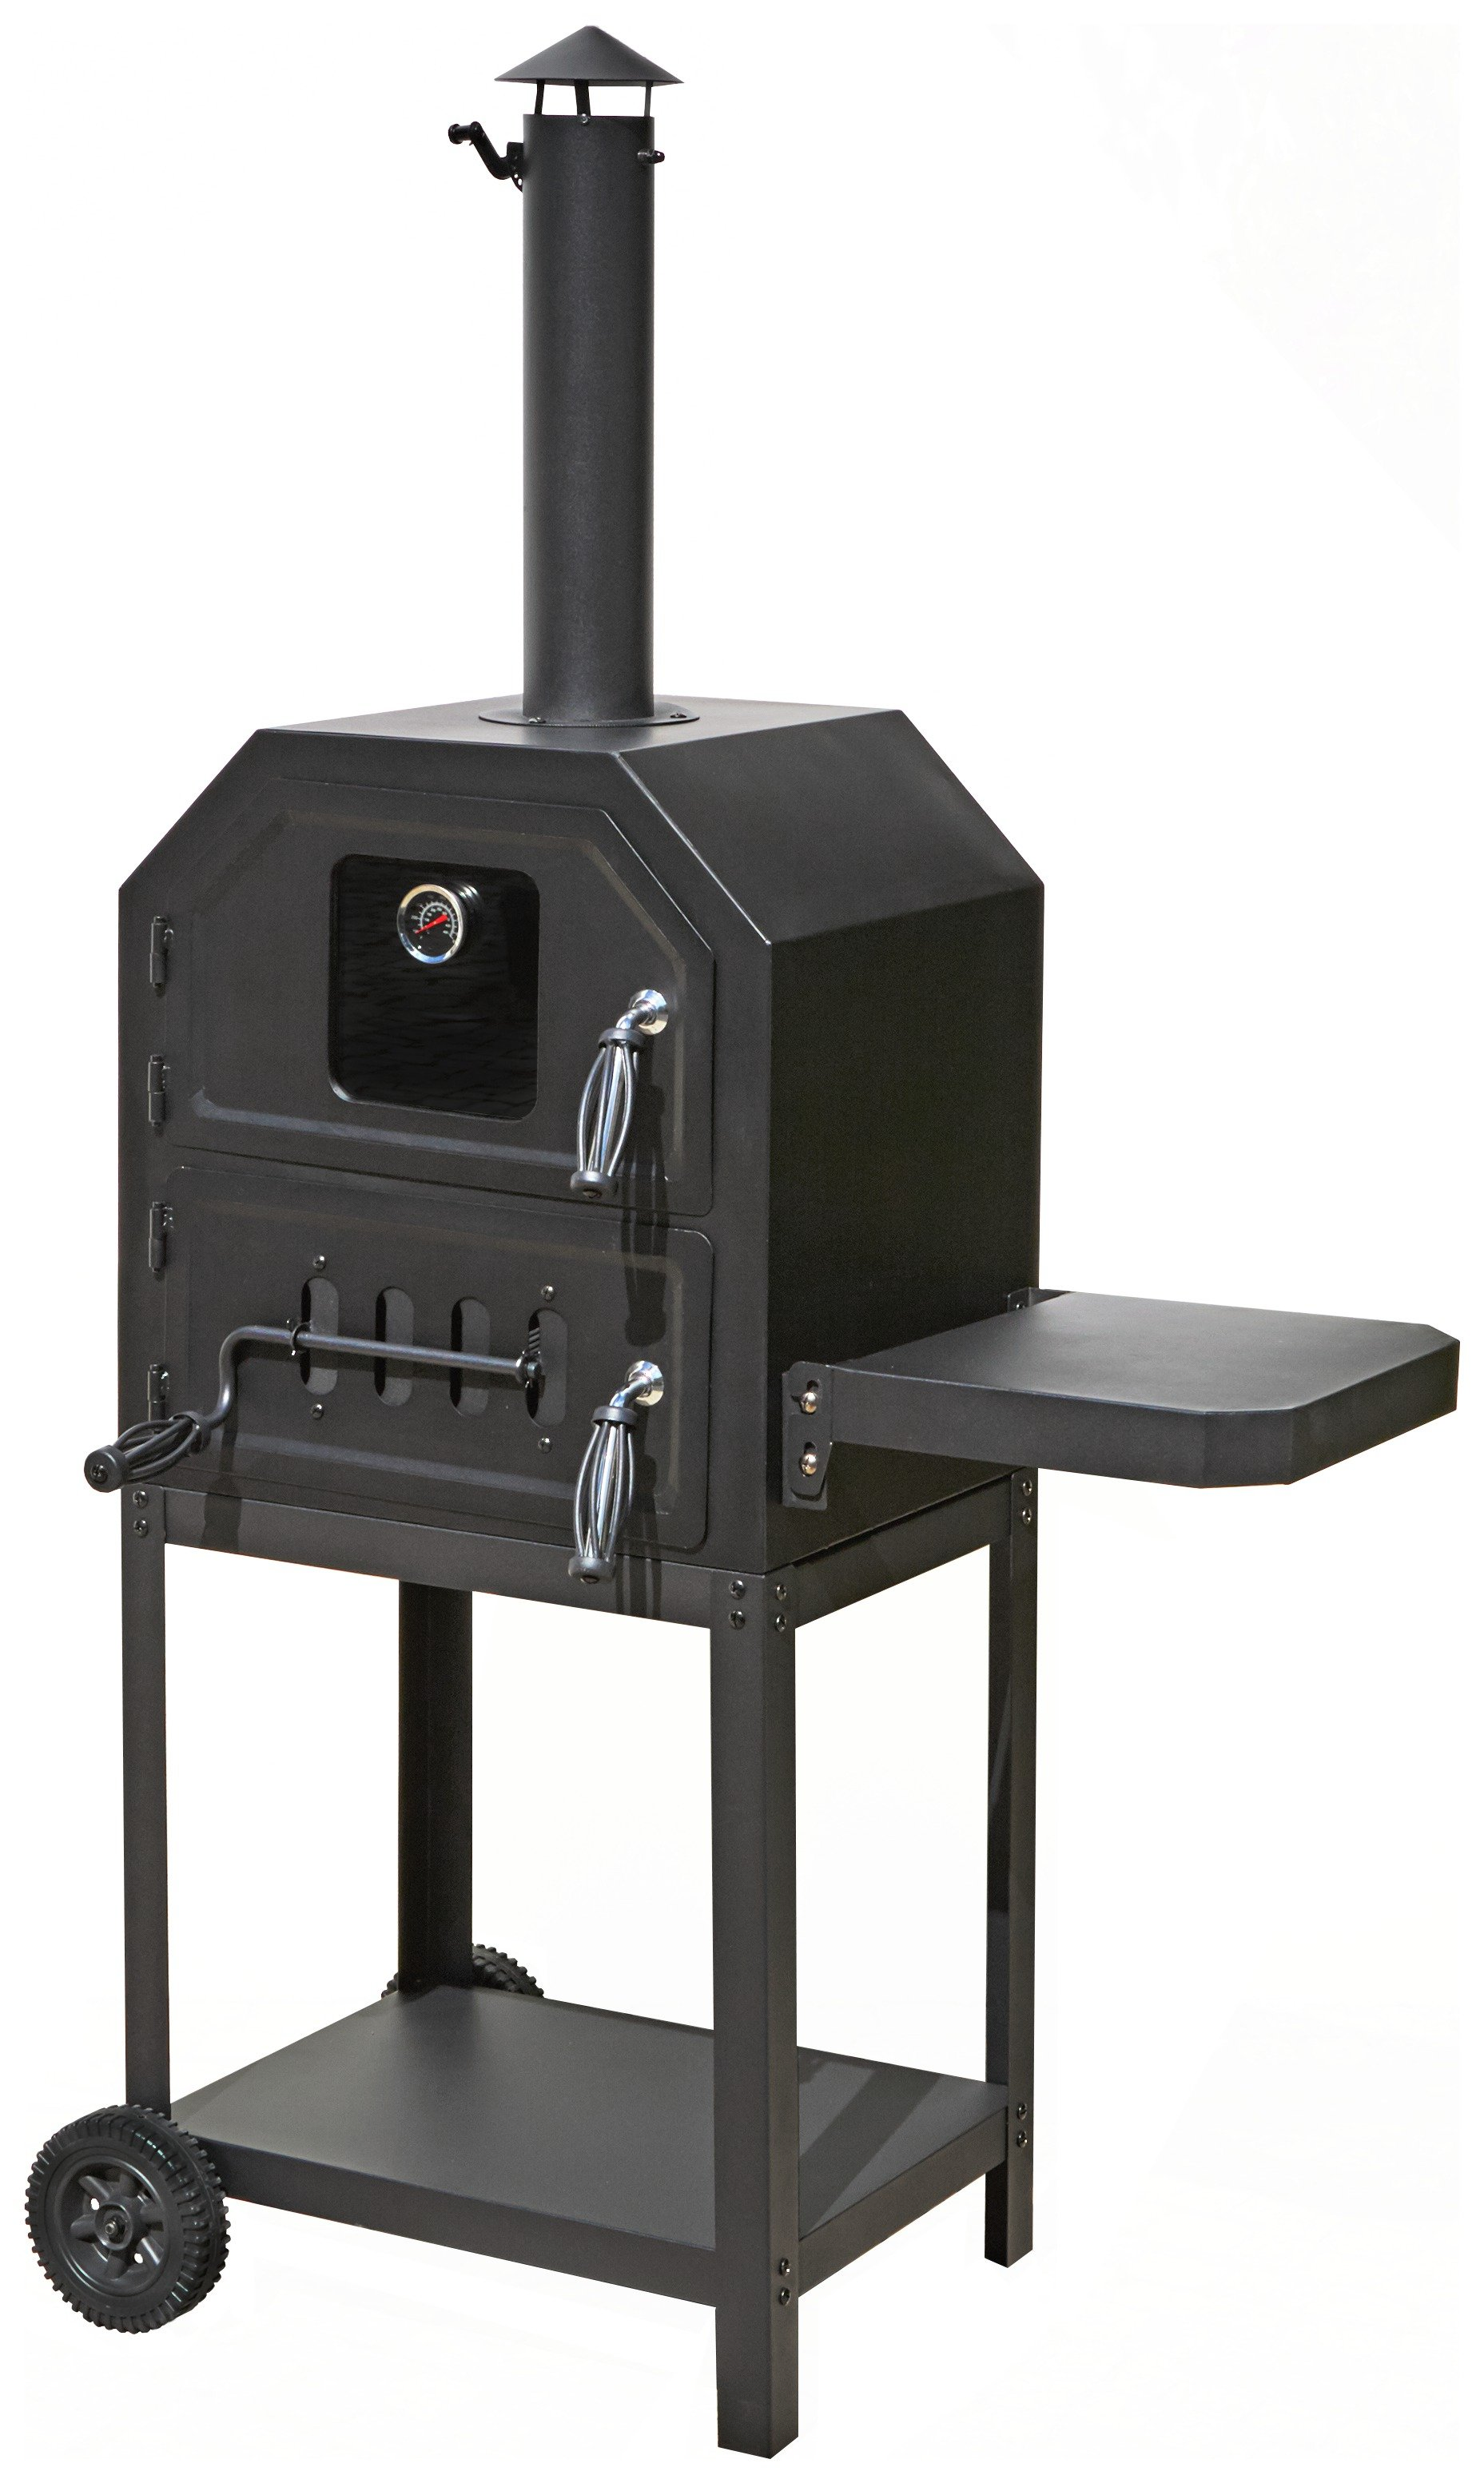 Buy Charcoal Pizza Oven Argos